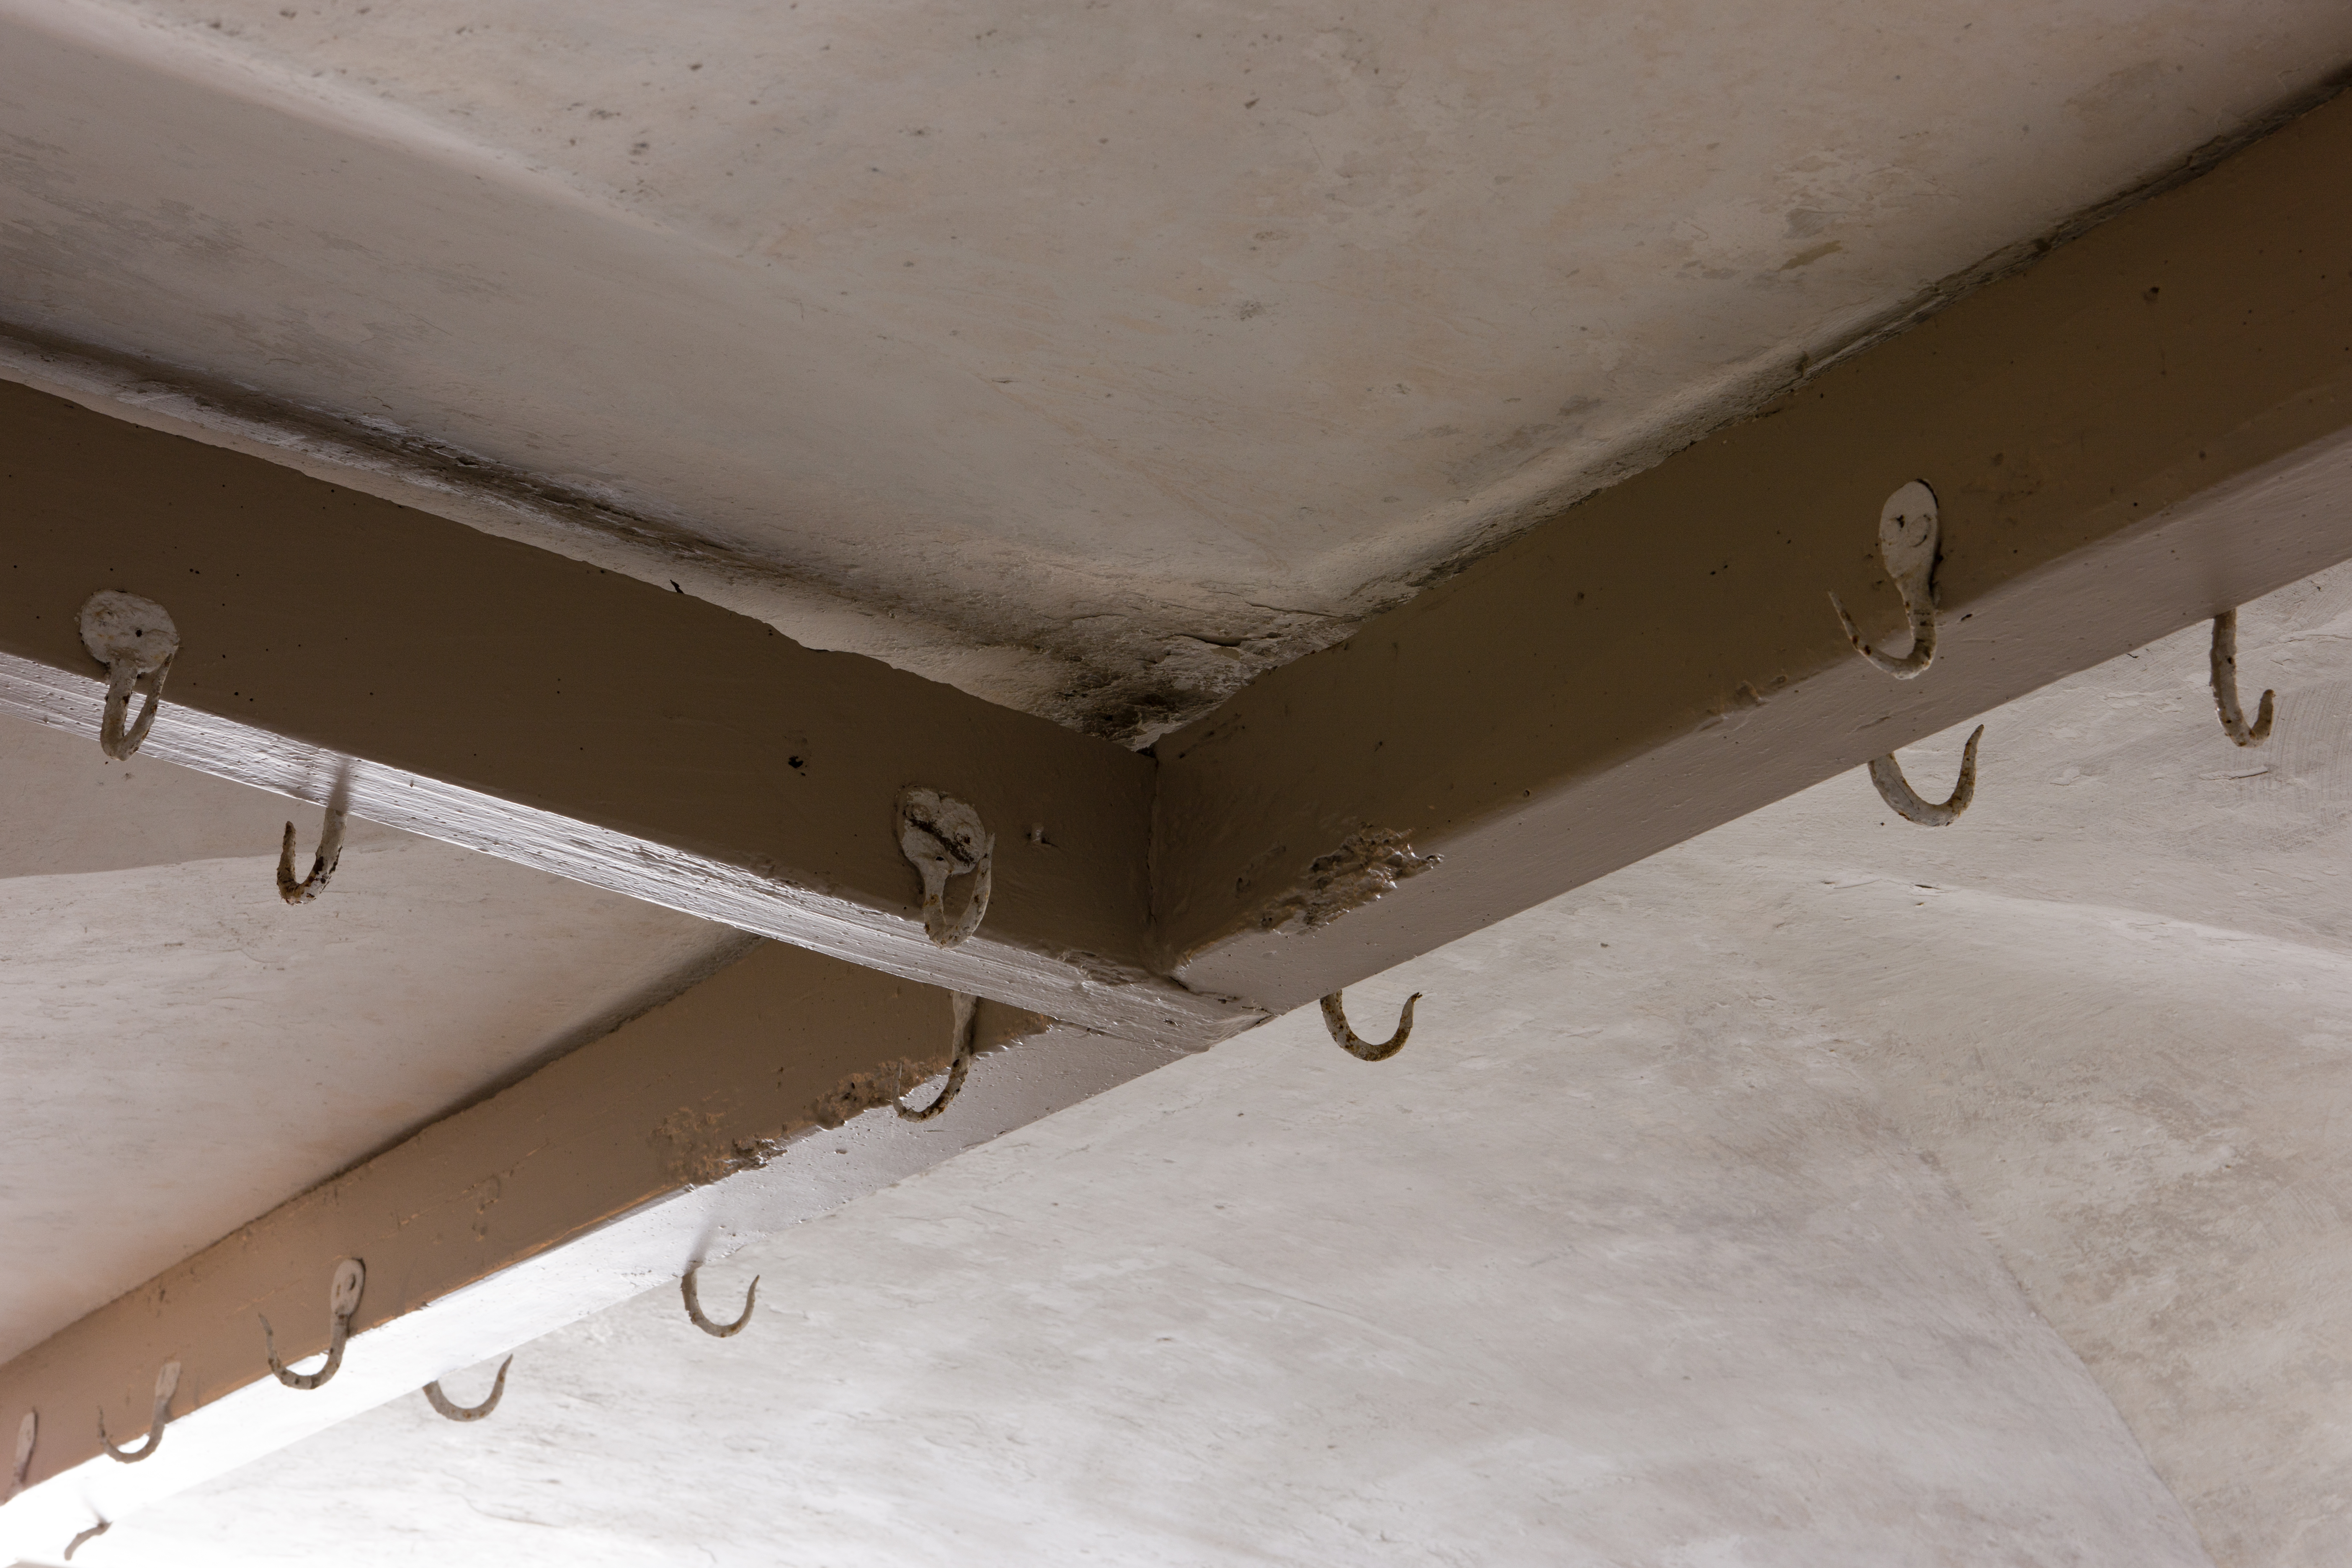 Hooks hanging off the ceiling of a kitchen